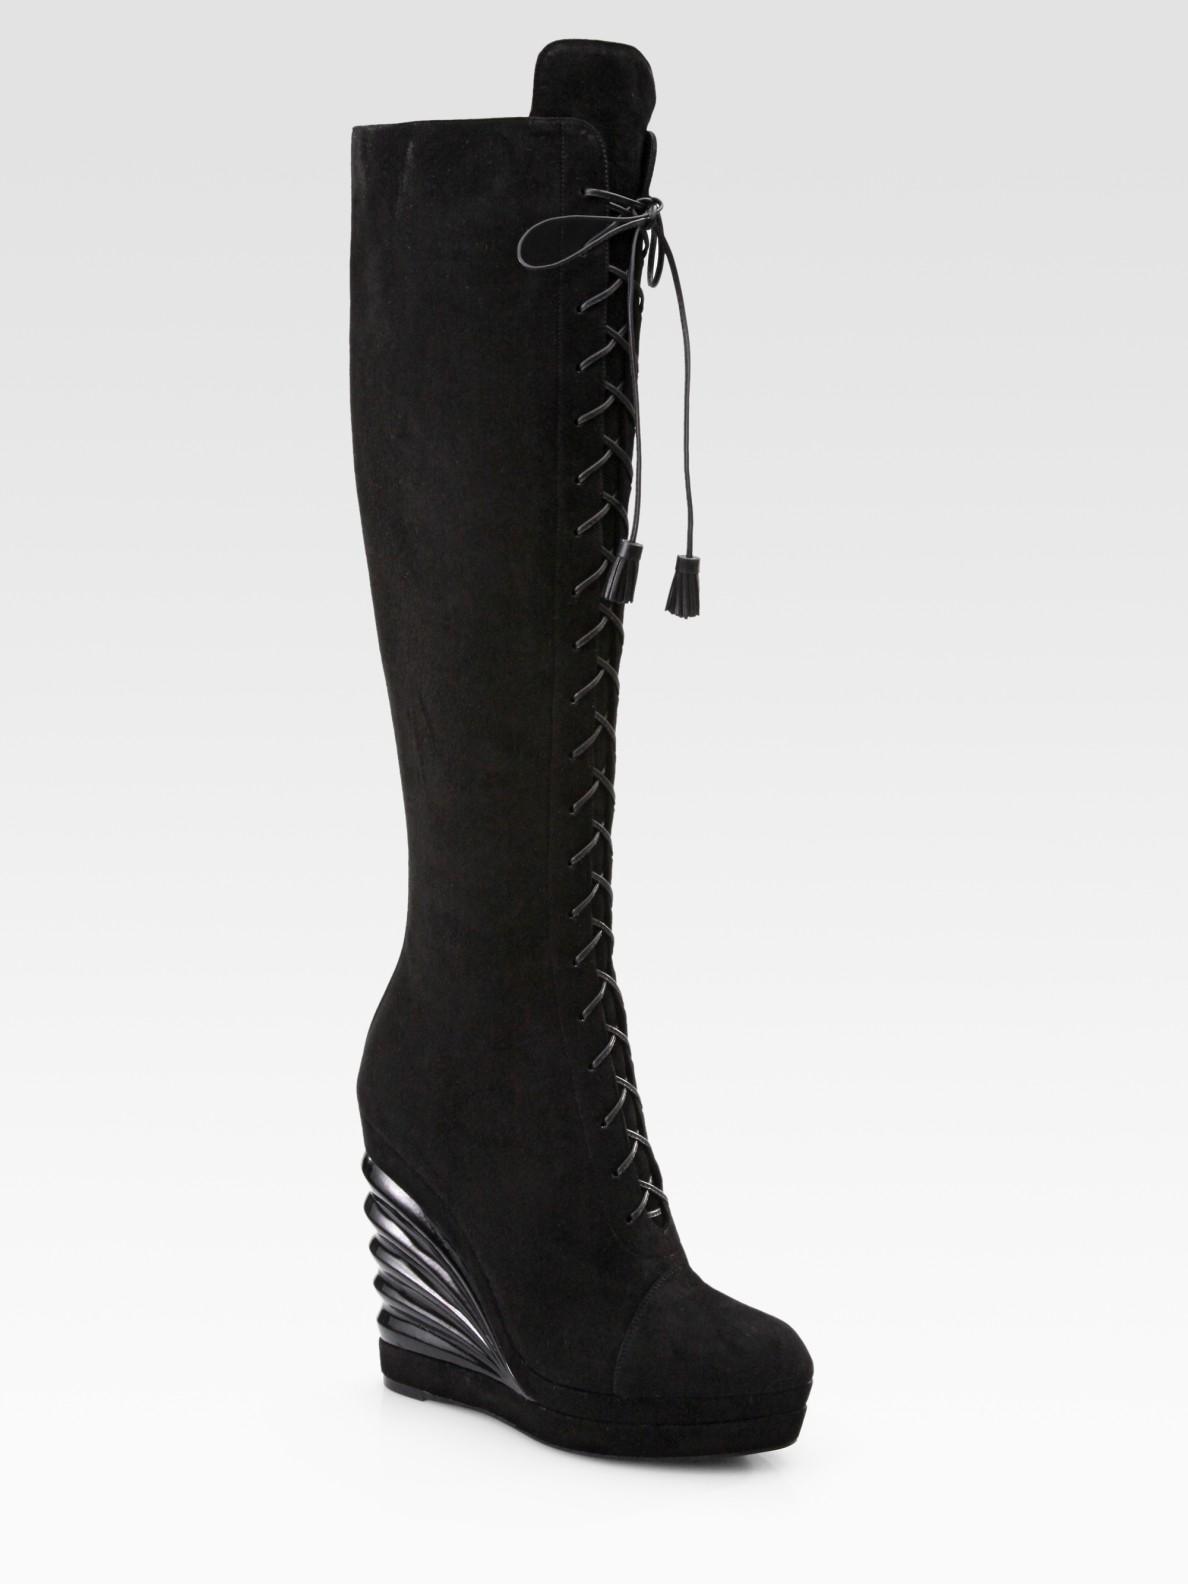 Saint Laurent Suede Lace Up Knee High Wedge Boots In Black